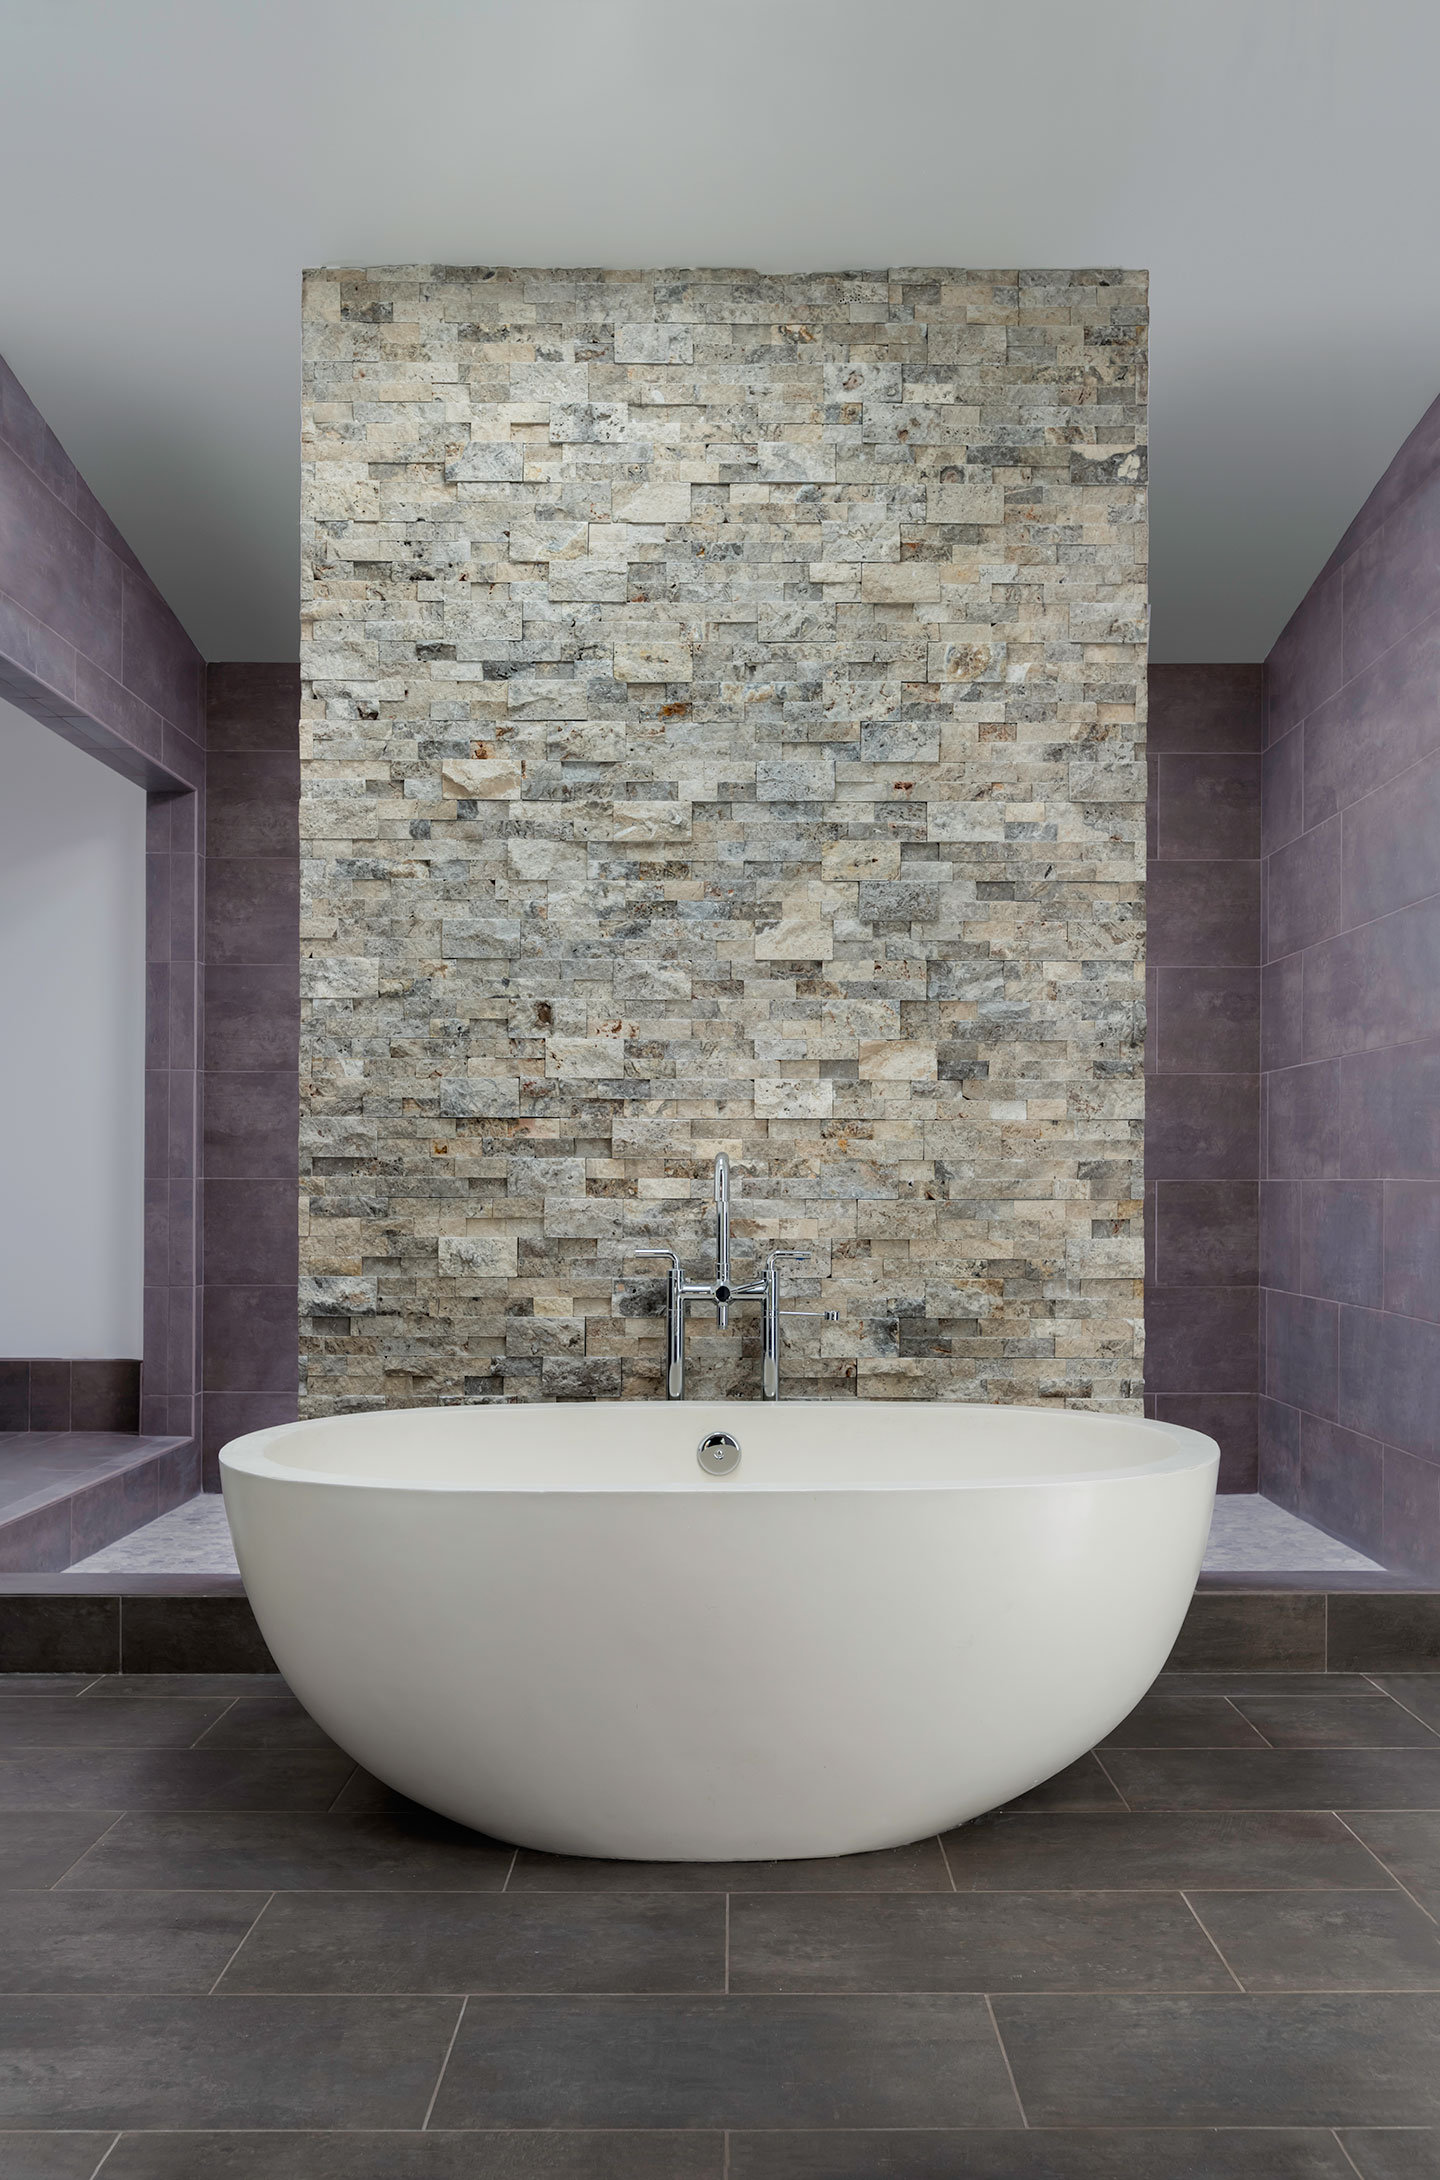 bathtub overview with tiled wall